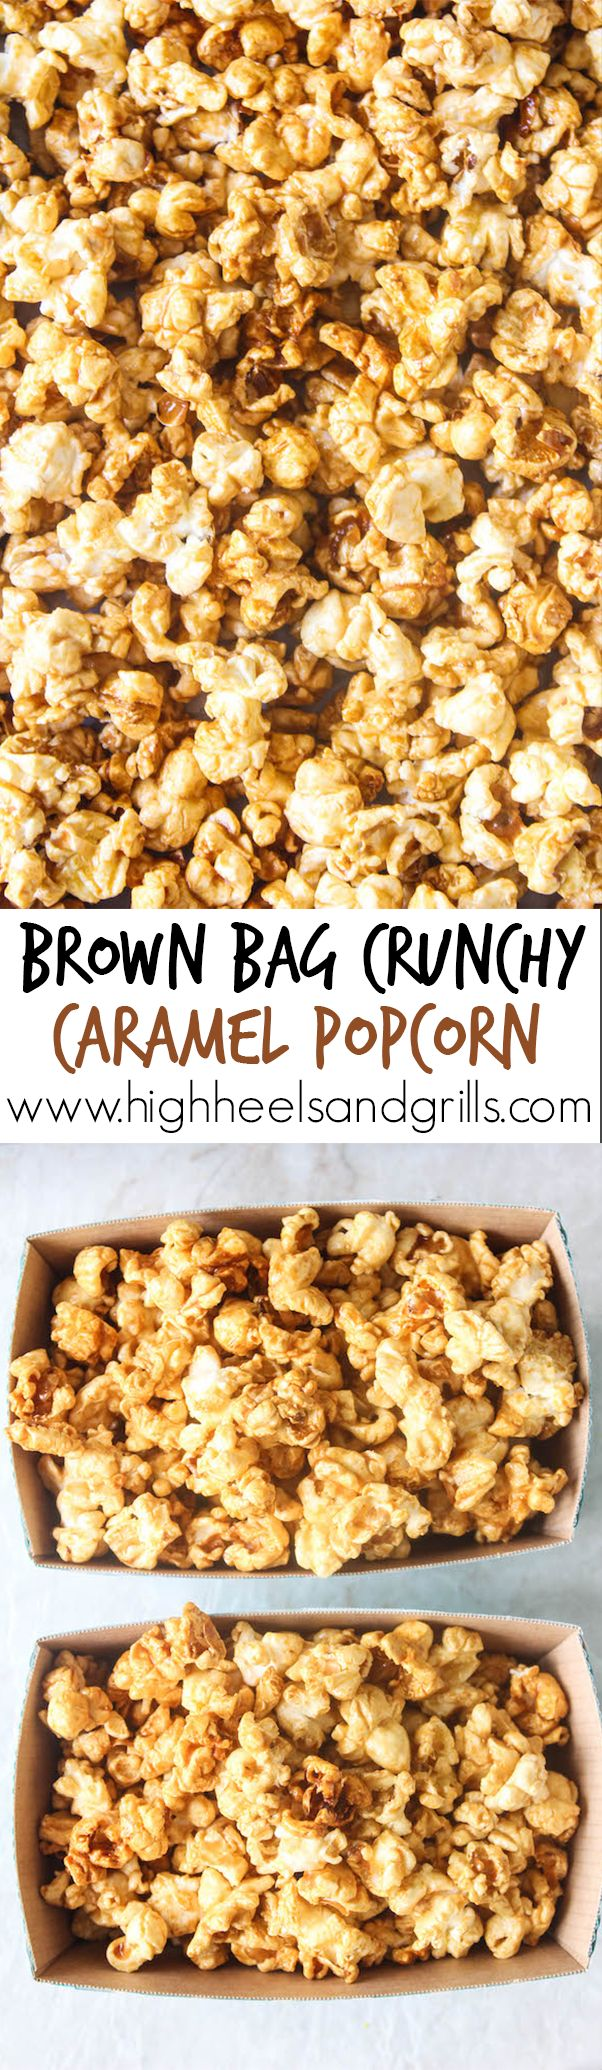 Brown Bag Crunchy Caramel Popcorn - This caramel popcorn is made using just your microwave and is easy, buttery, and delicious.